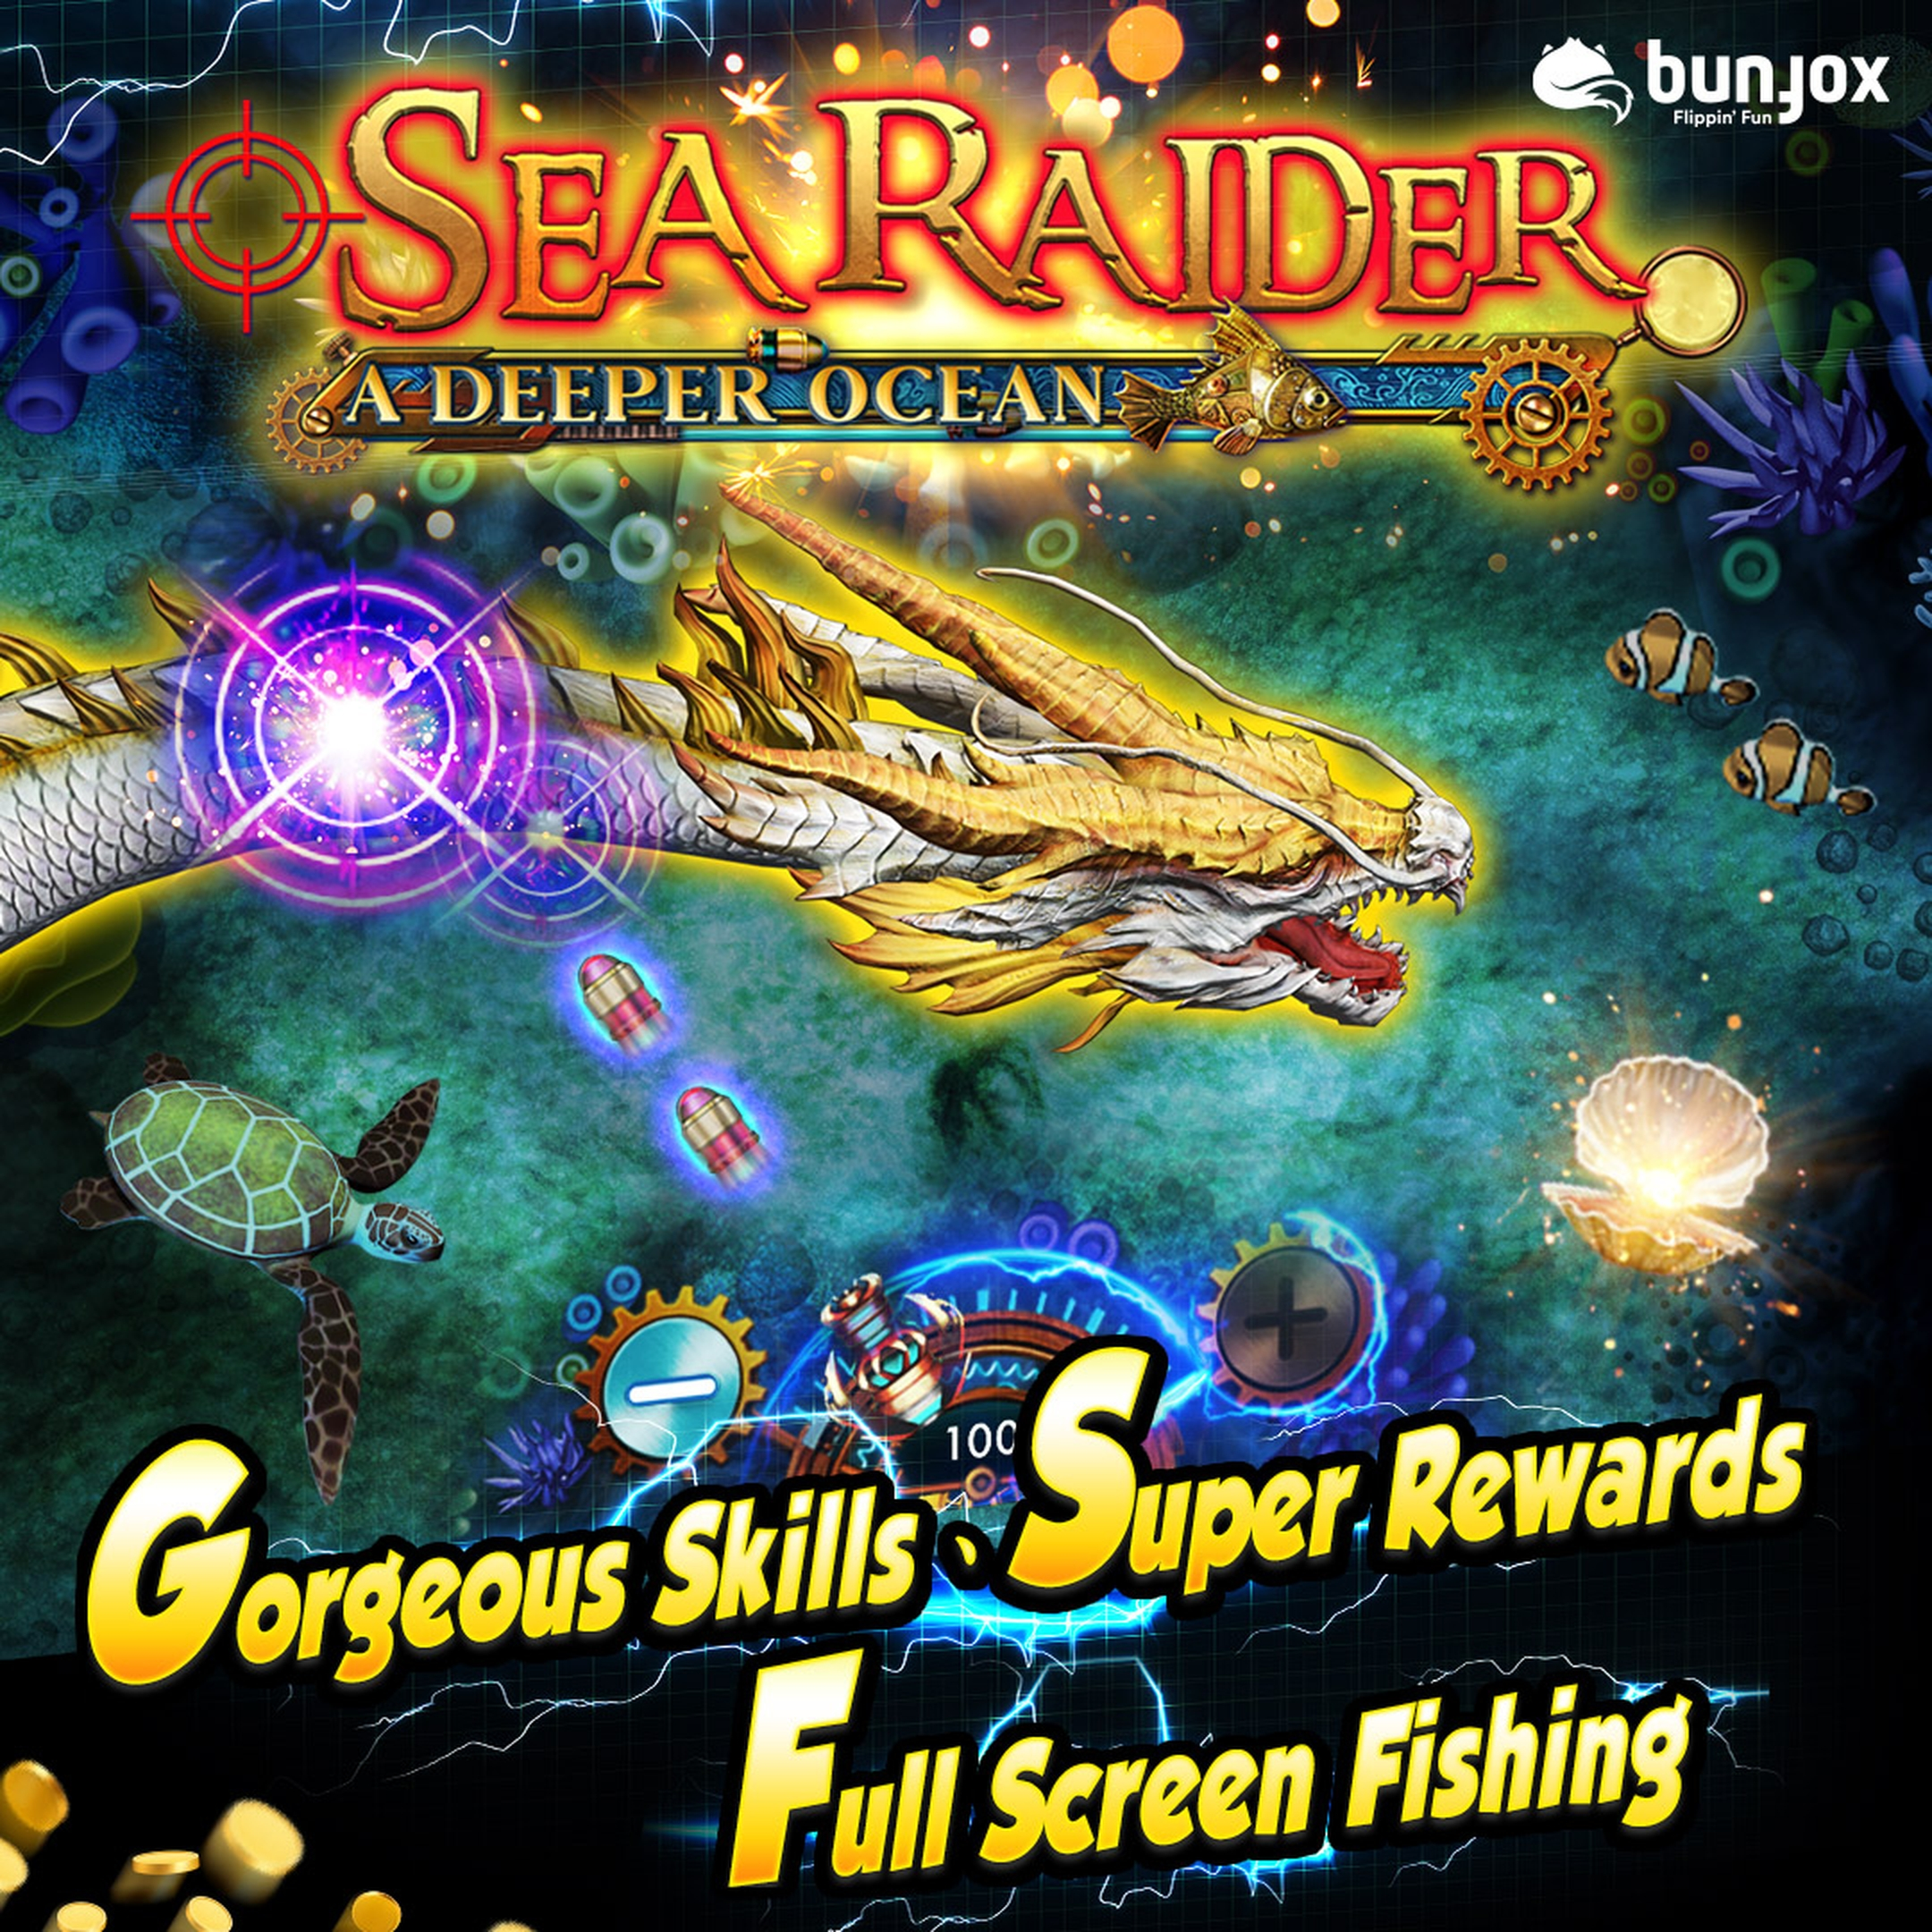 Info of Sea Raider Slot Game by Bunfox